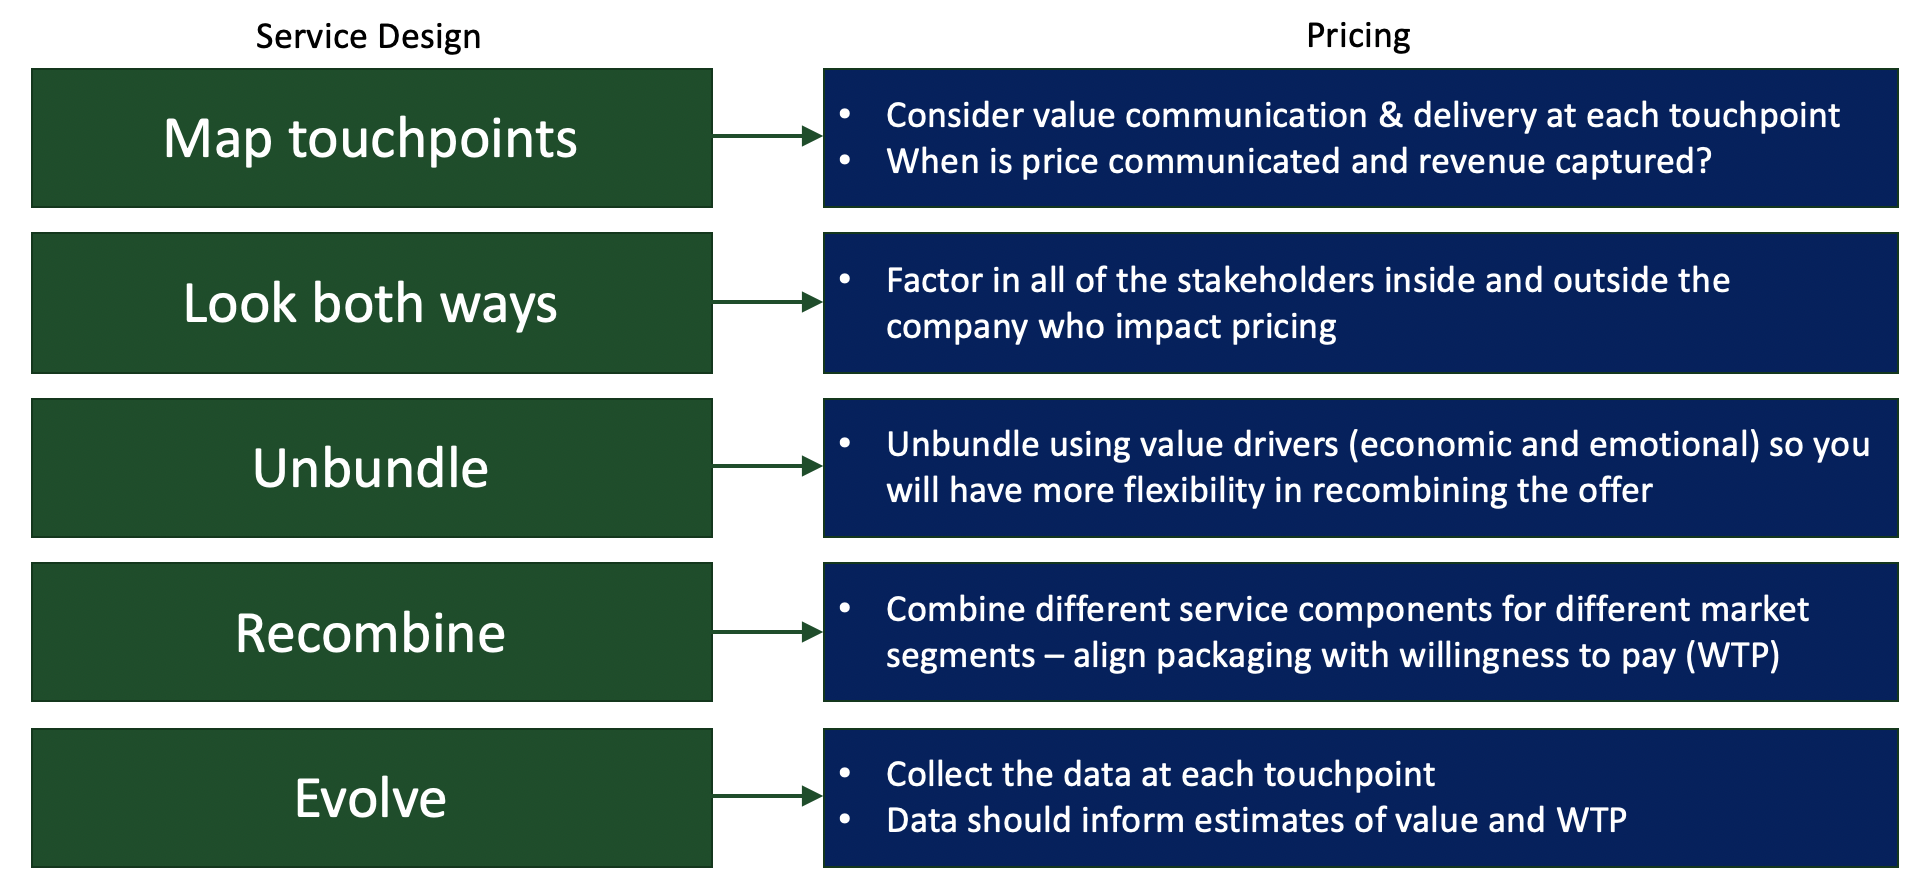 Service design mapped to pricing